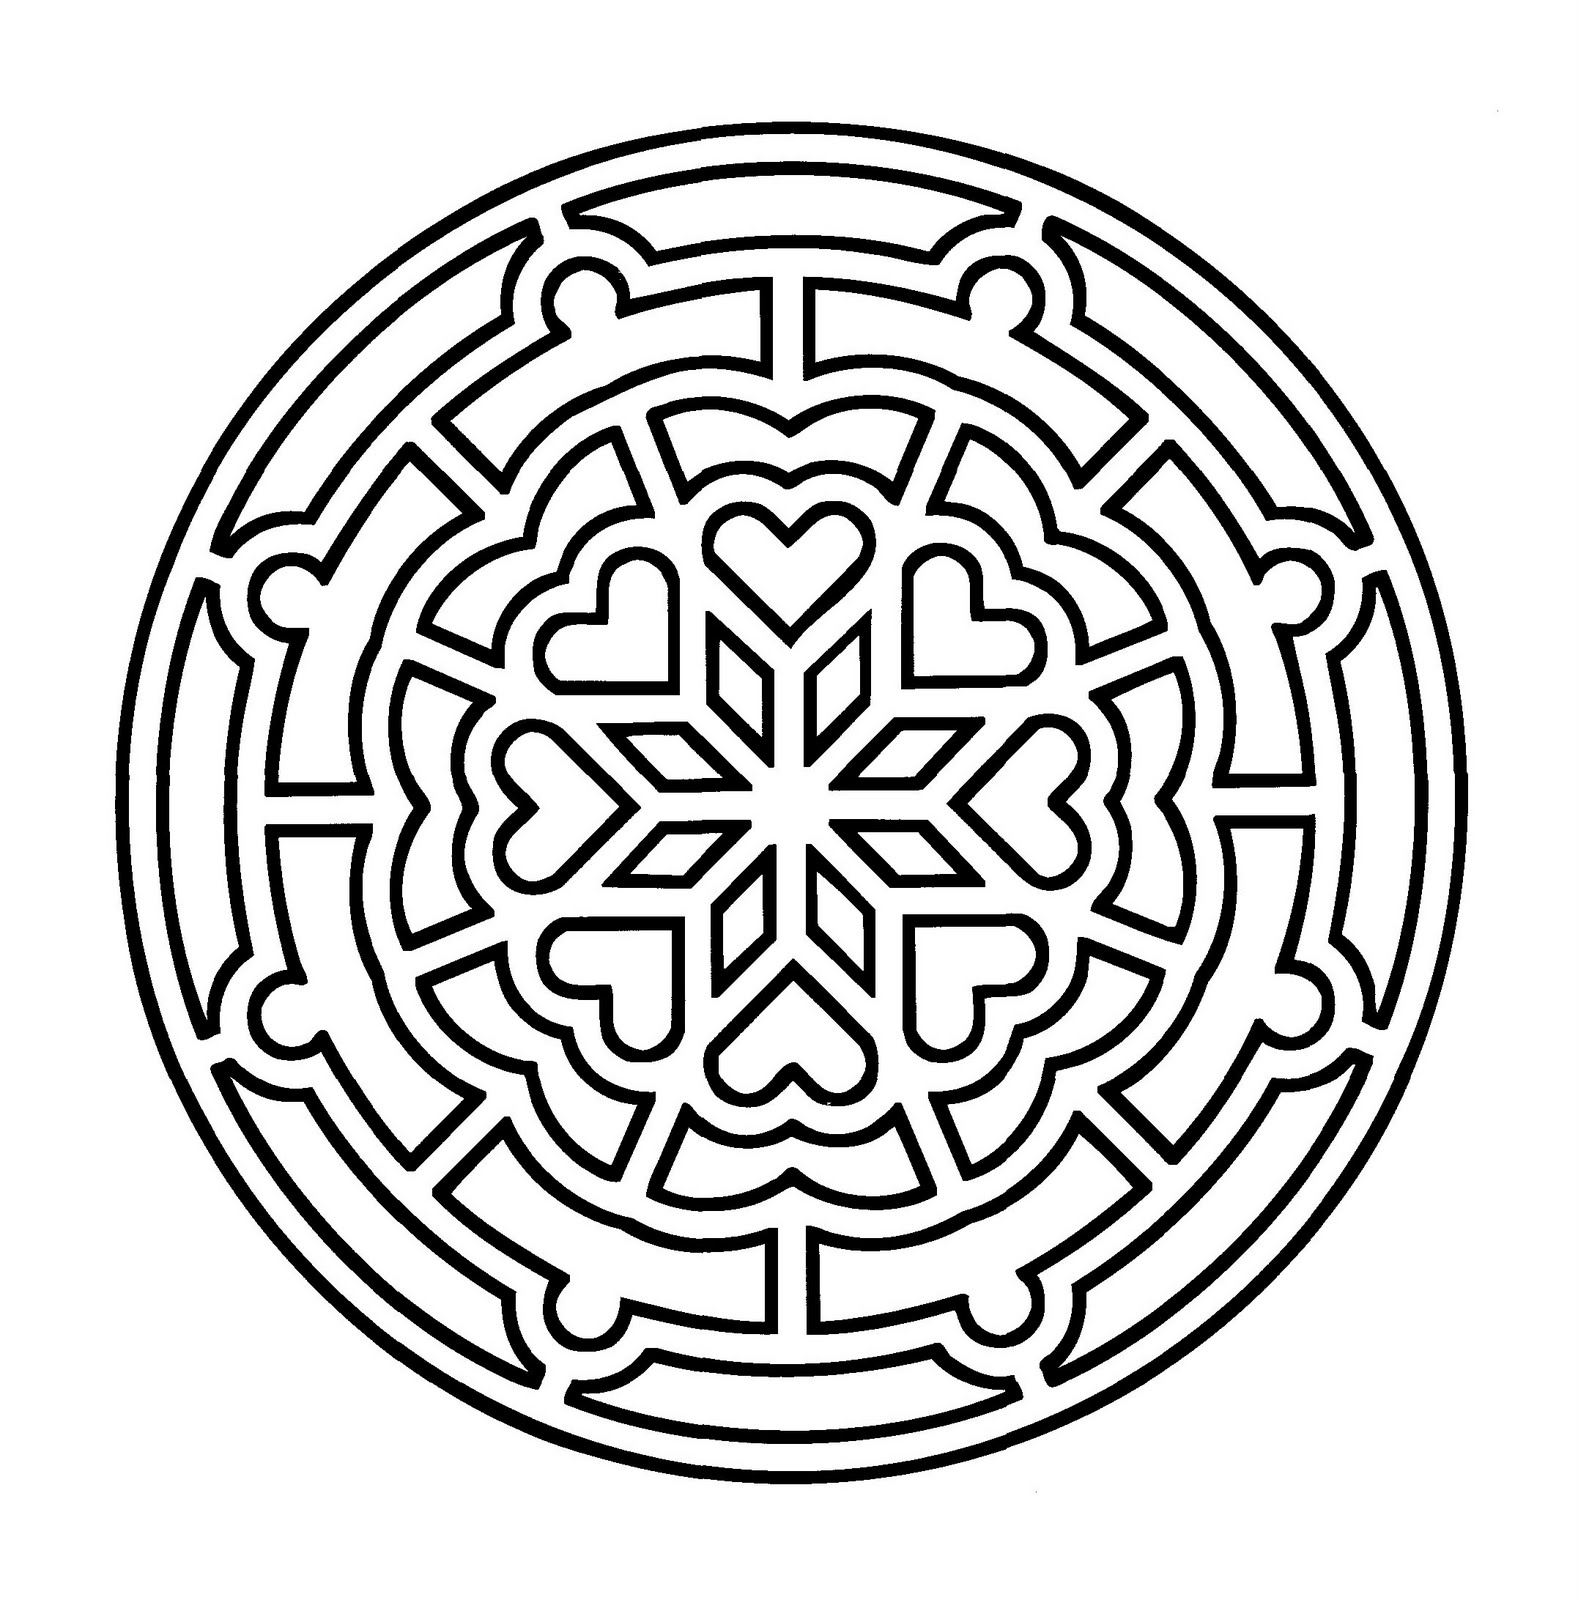 simple mandalas to color 32 simple adult coloring books in 2020 mandala coloring mandalas color to simple